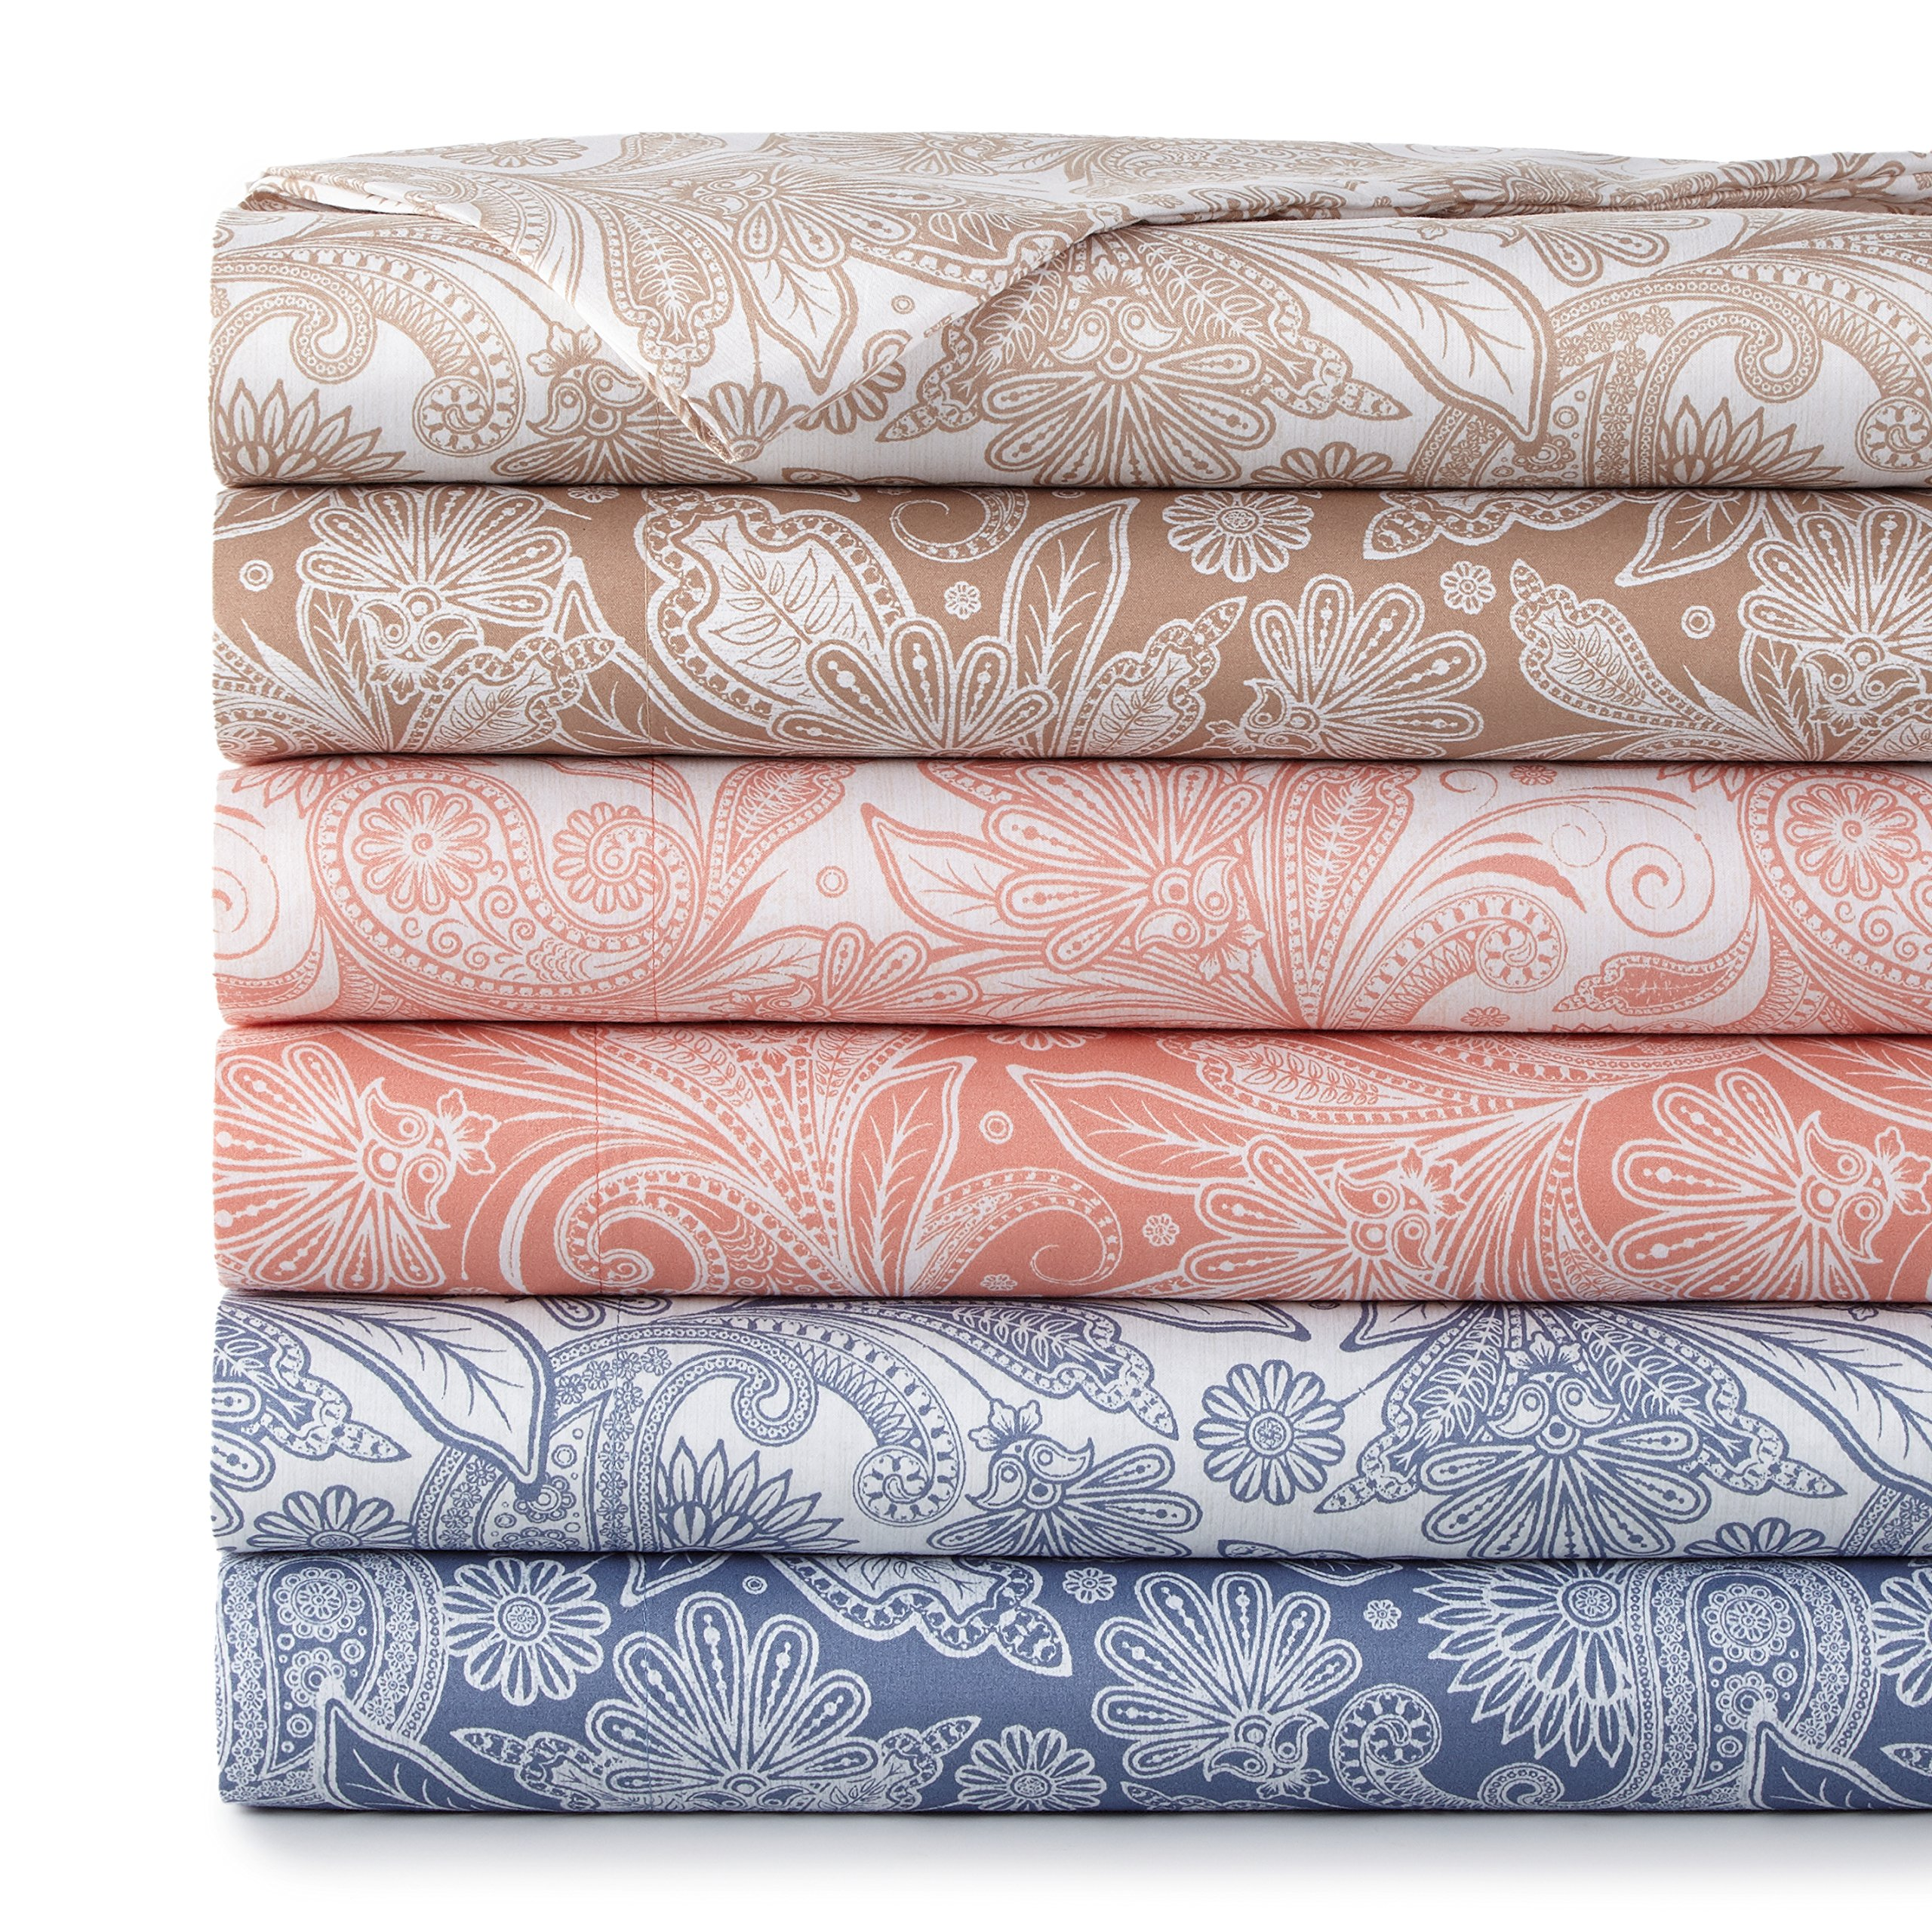 Southshore Fine Linens - Perfect Paisley Boho Collection 4 Piece Sheet Sets, Full, White with Blue Paisley by Southshore Fine Living, Inc. (Image #4)